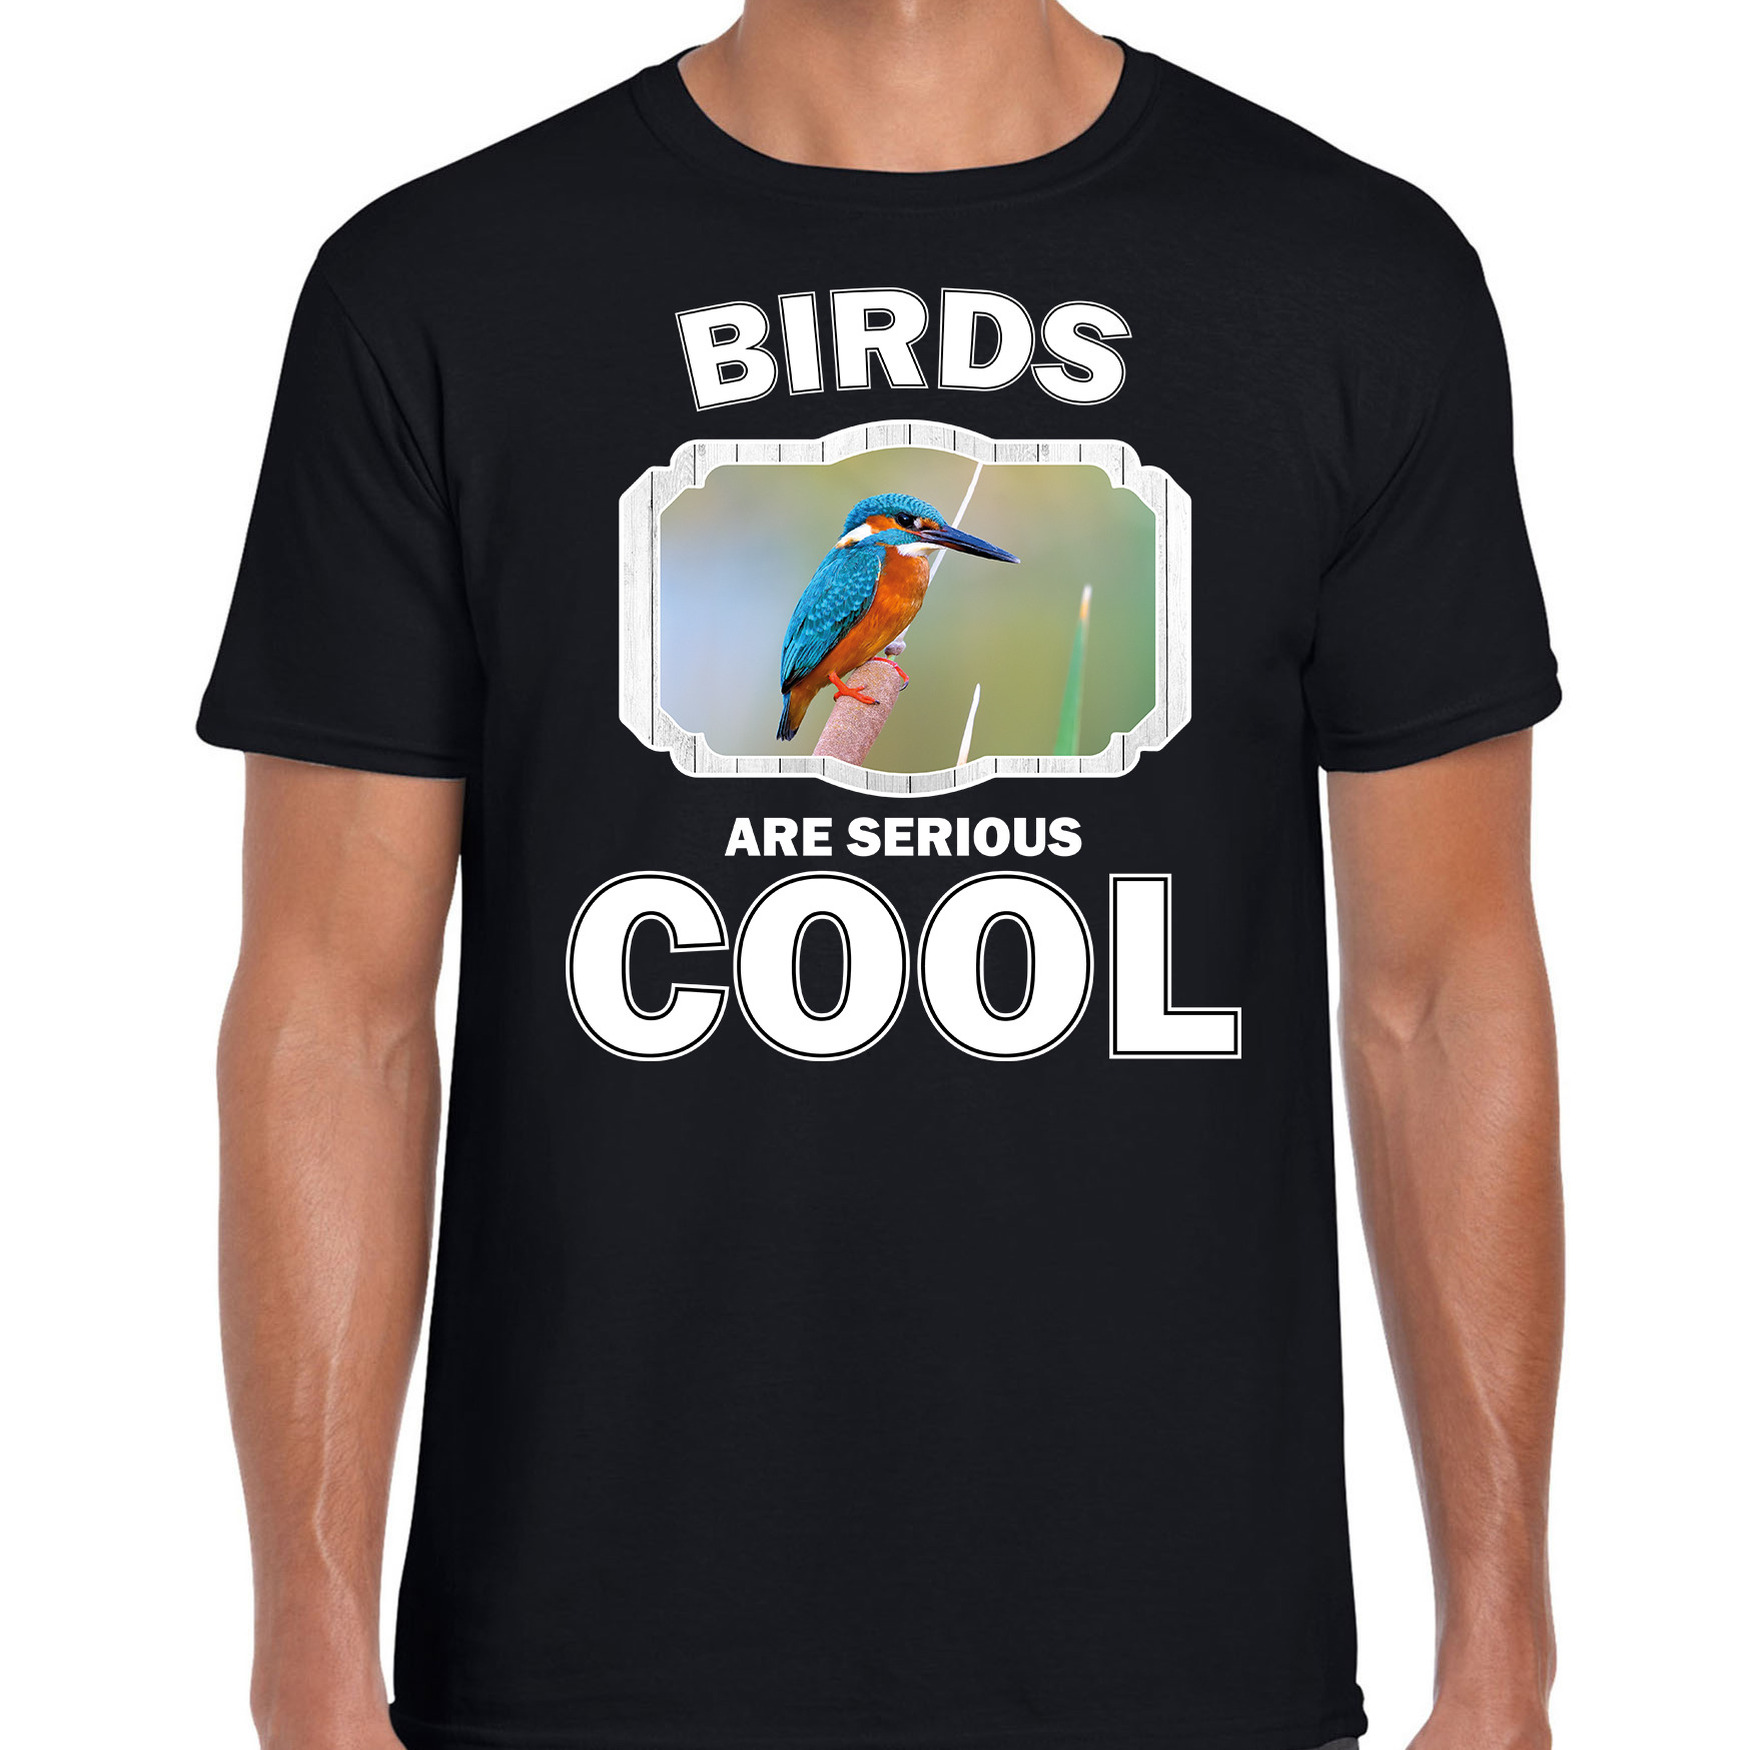 T-shirt birds are serious cool zwart heren - vogels/ ijsvogel shirt